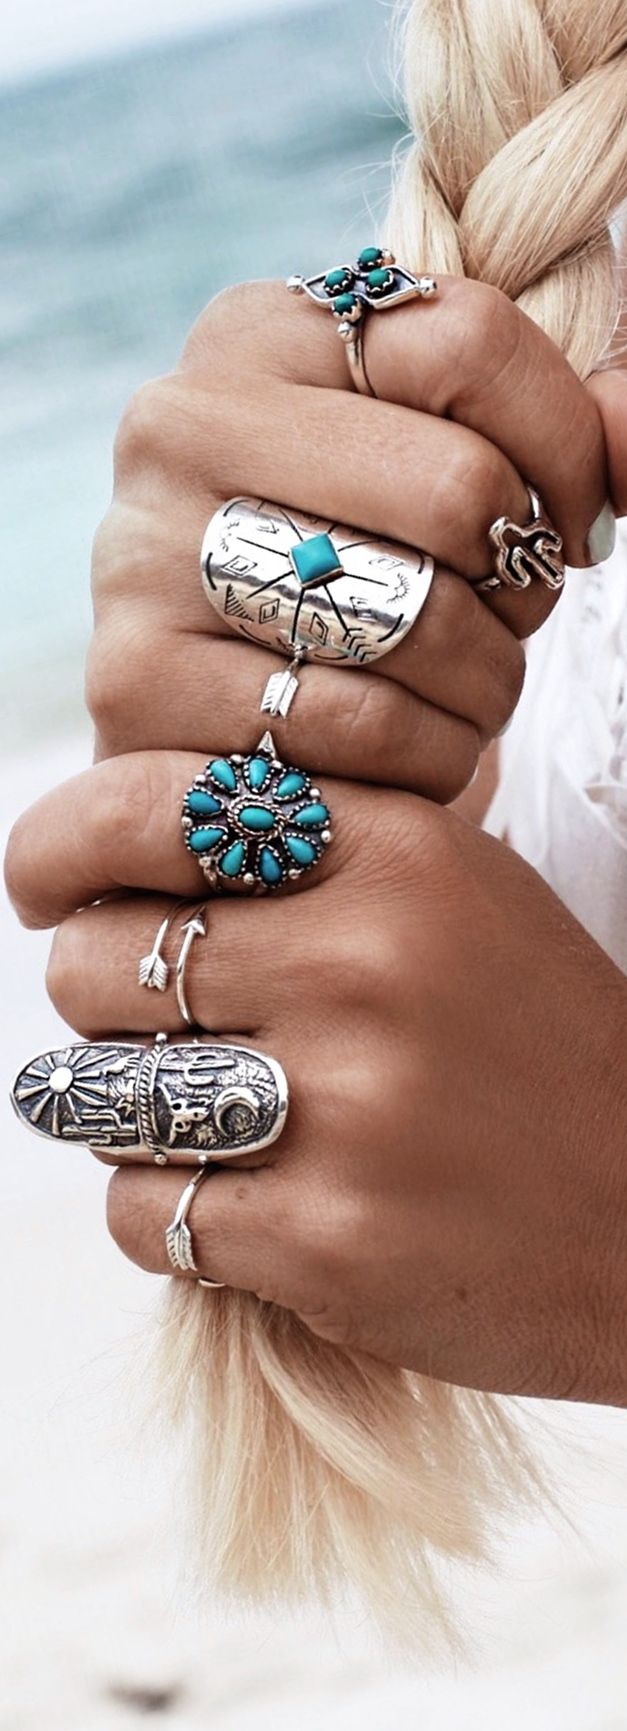 Boho Style Outfits, Outfit Ideas, Outfit Accessories, Cute Accessories